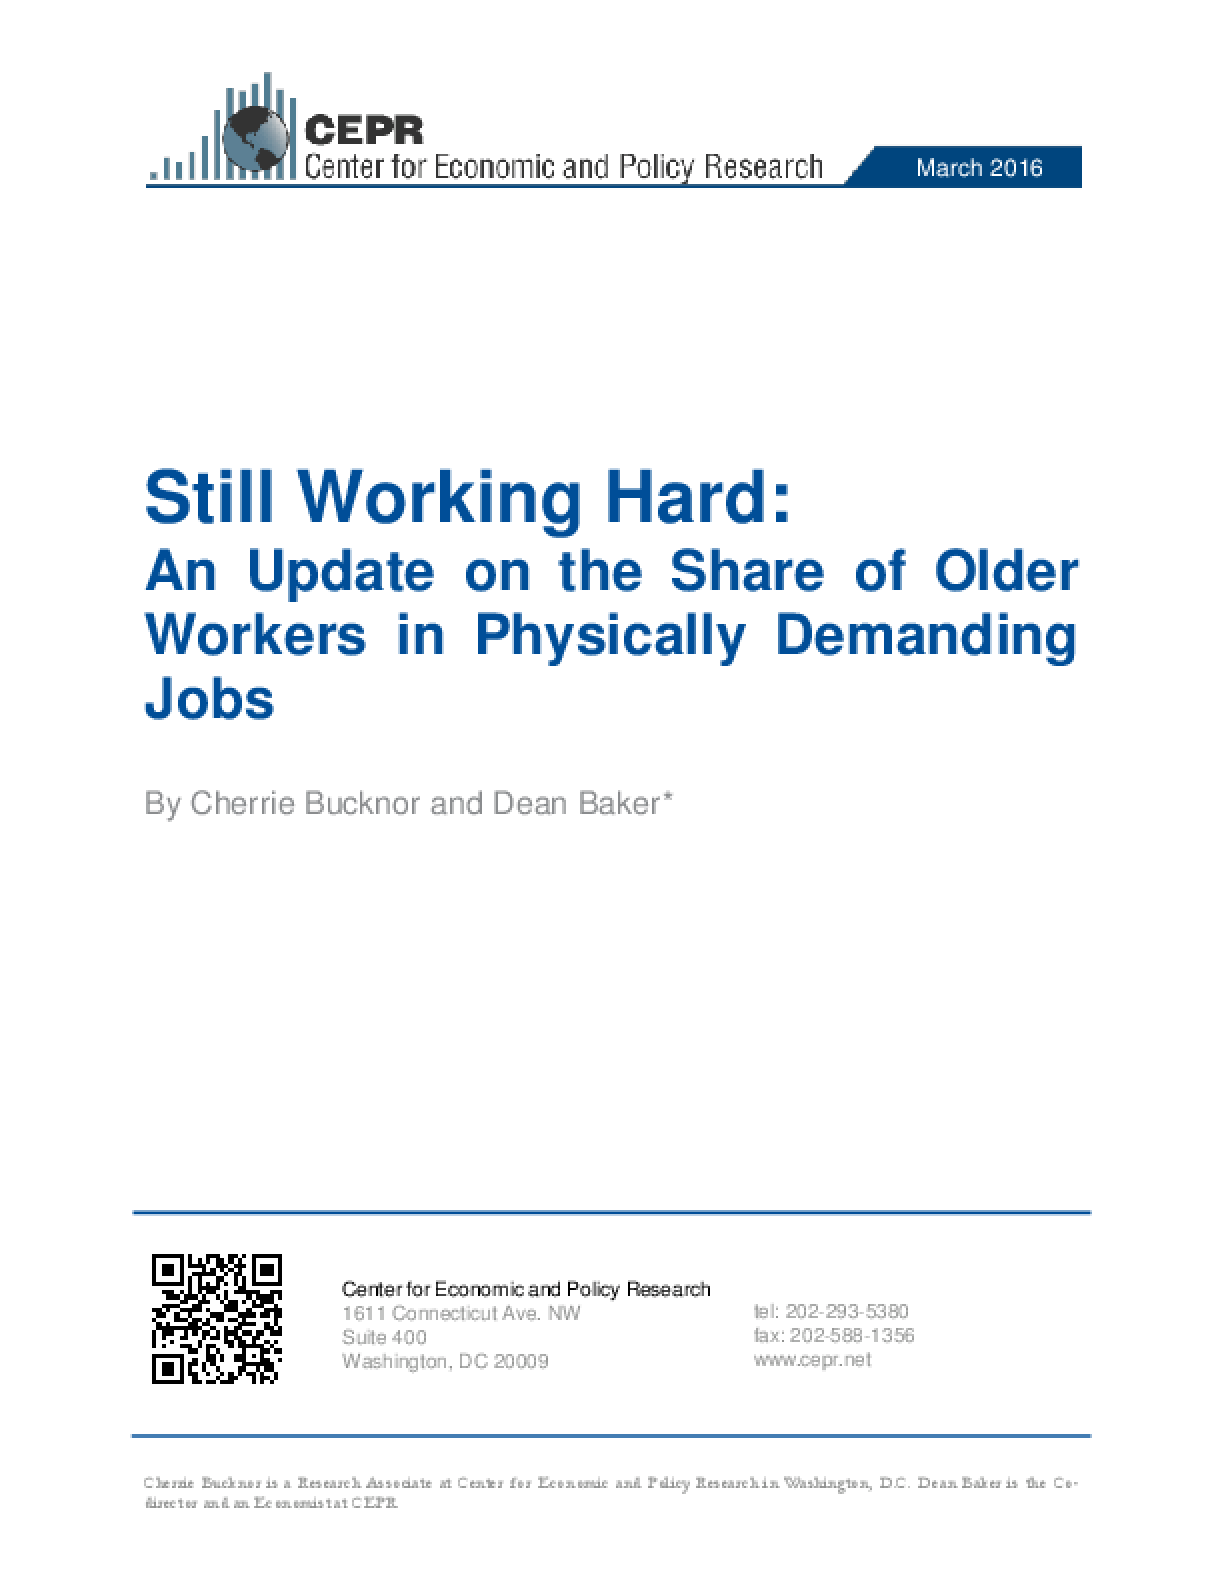 Still Working Hard: An Update on the Share of Older Workers in Physically Demanding Jobs